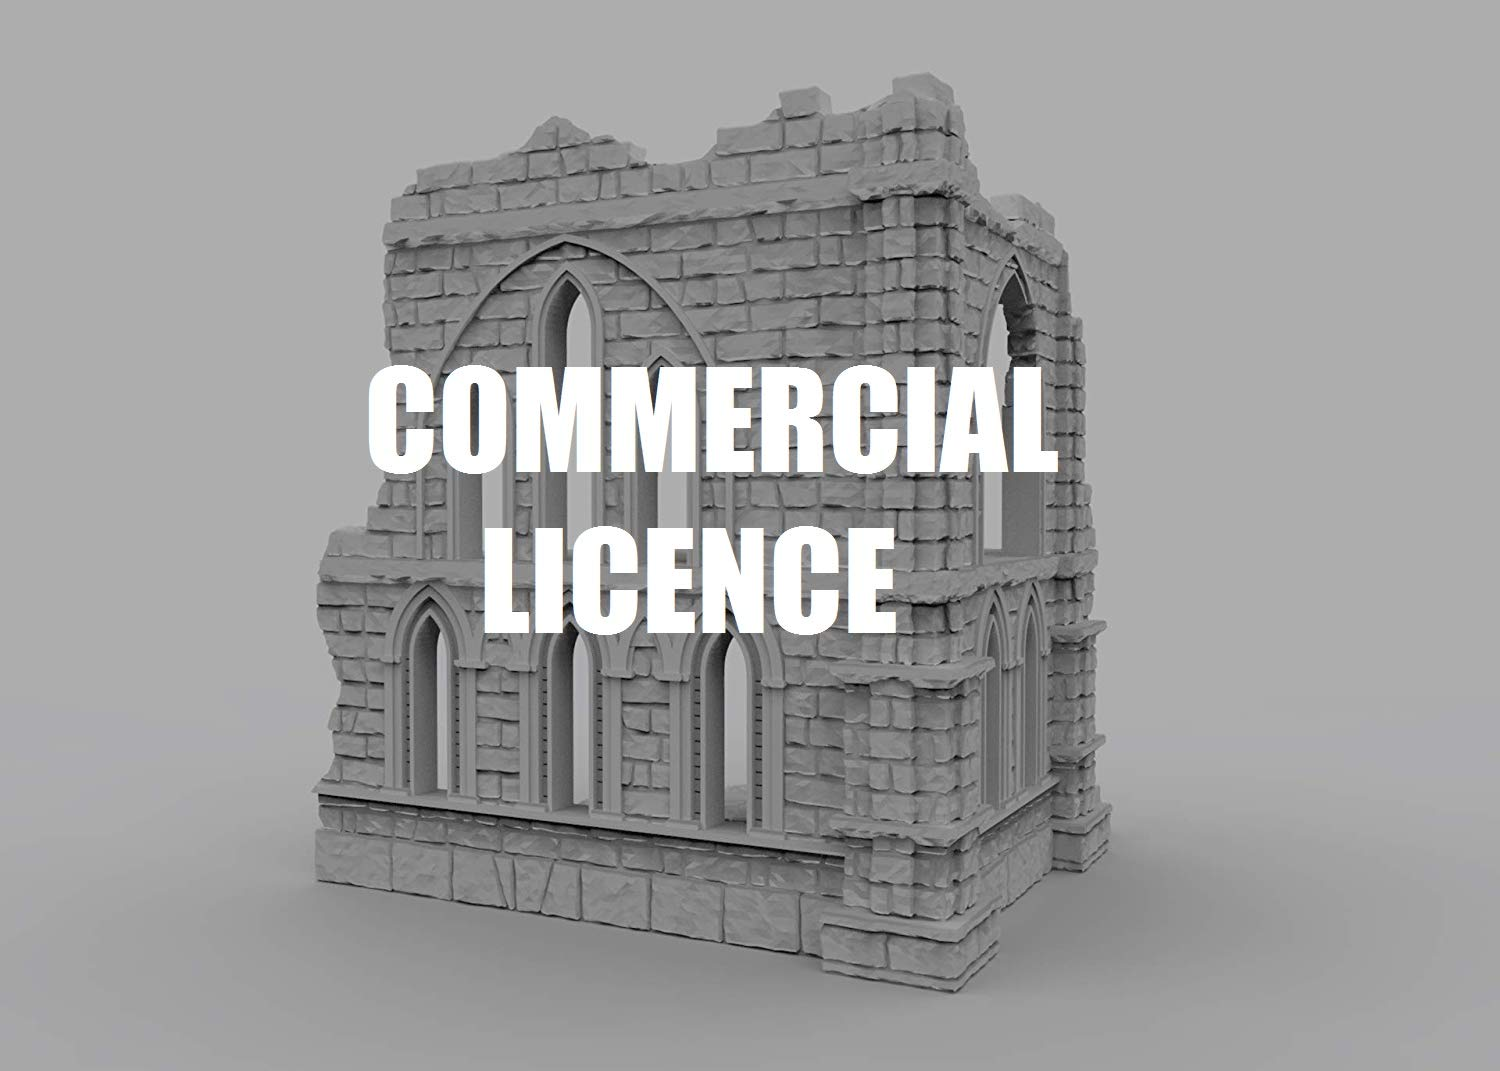 Commercial Licence to 3D printable wargaming scenery – STL files for wargaming terrain printing – 3D PRINT AND SELL !